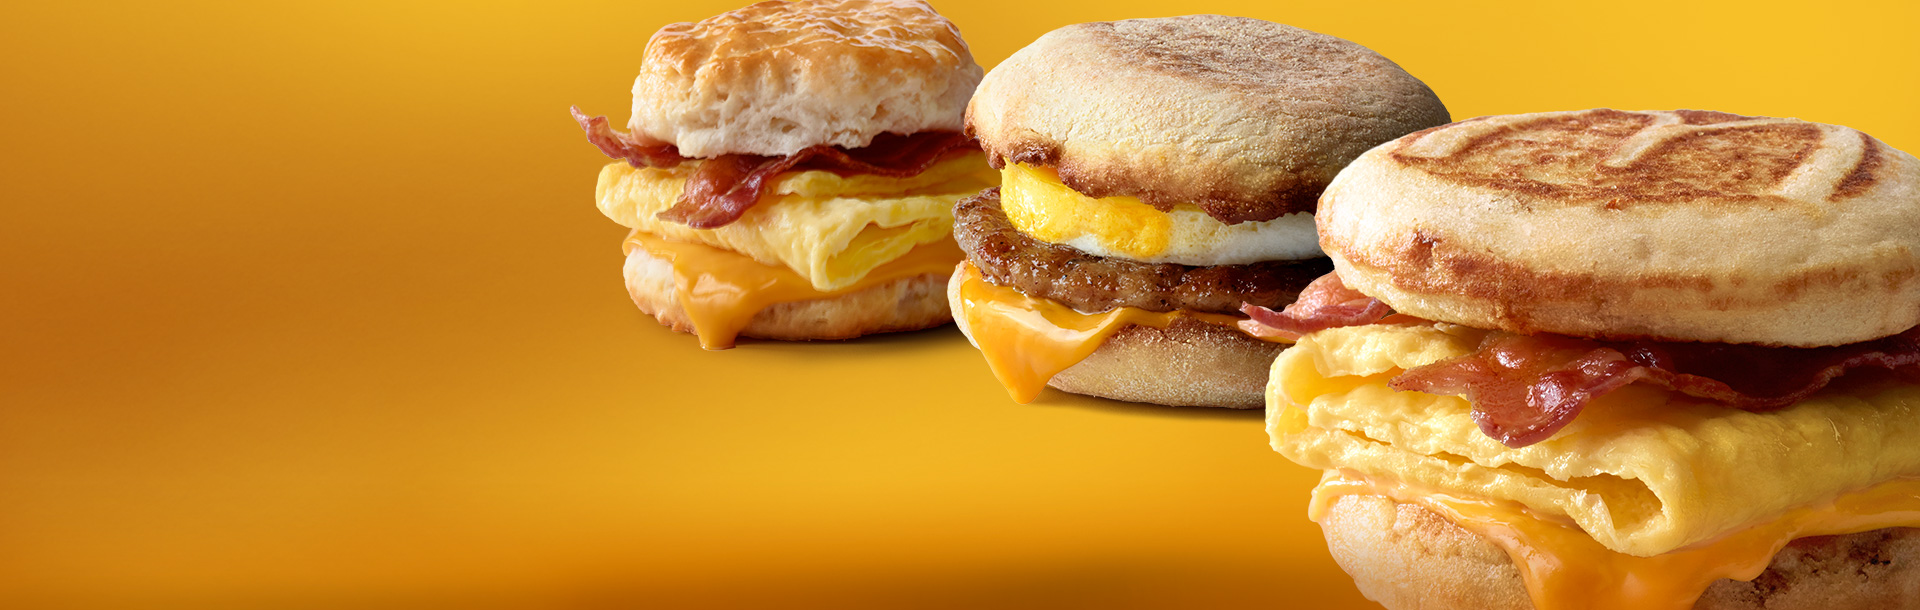 A Bacon, Egg & Cheese Biscuit, Sausage McMuffin® with Egg and Bacon, Egg & Cheese McGriddles®